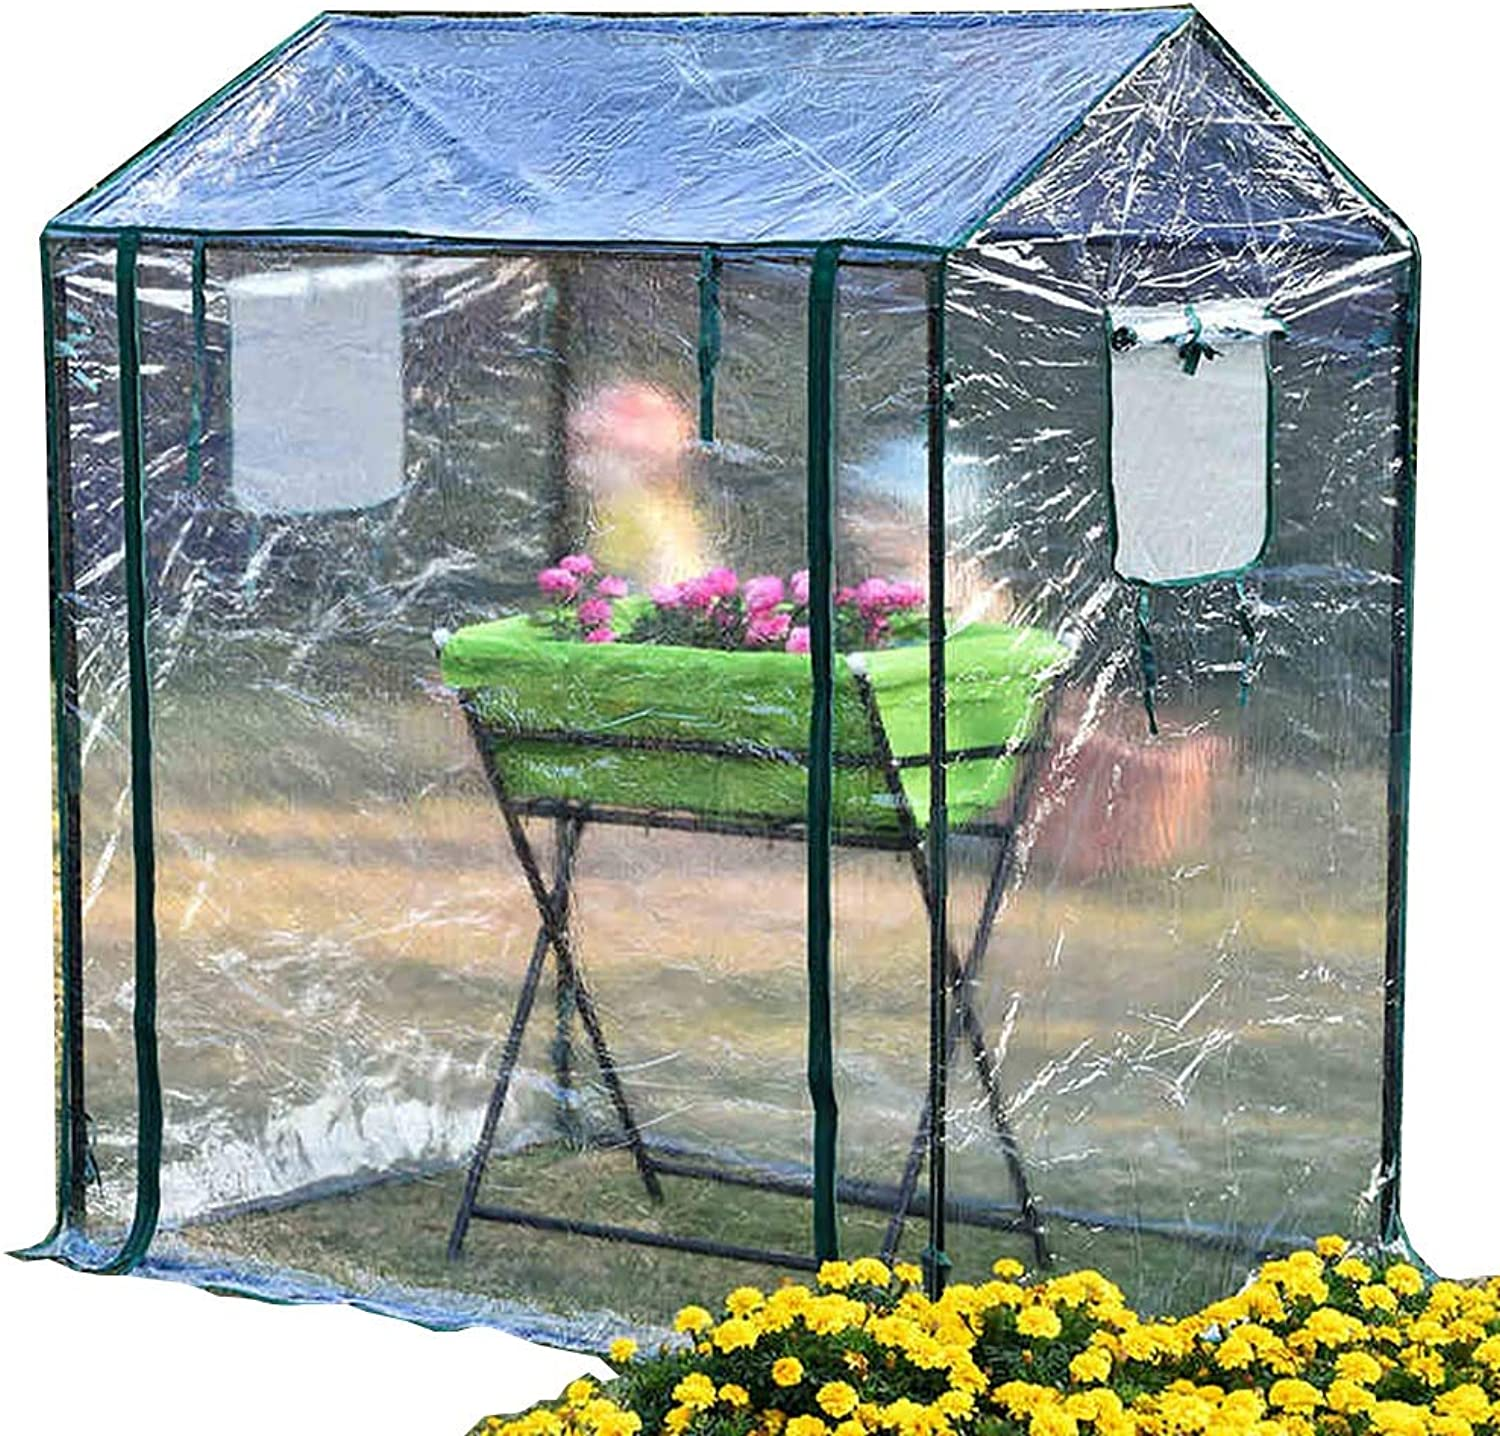 LIZIWS Greenhouse flower house family sprouts planting rack PVC transparent cover 125  85  150cm, 2 windows